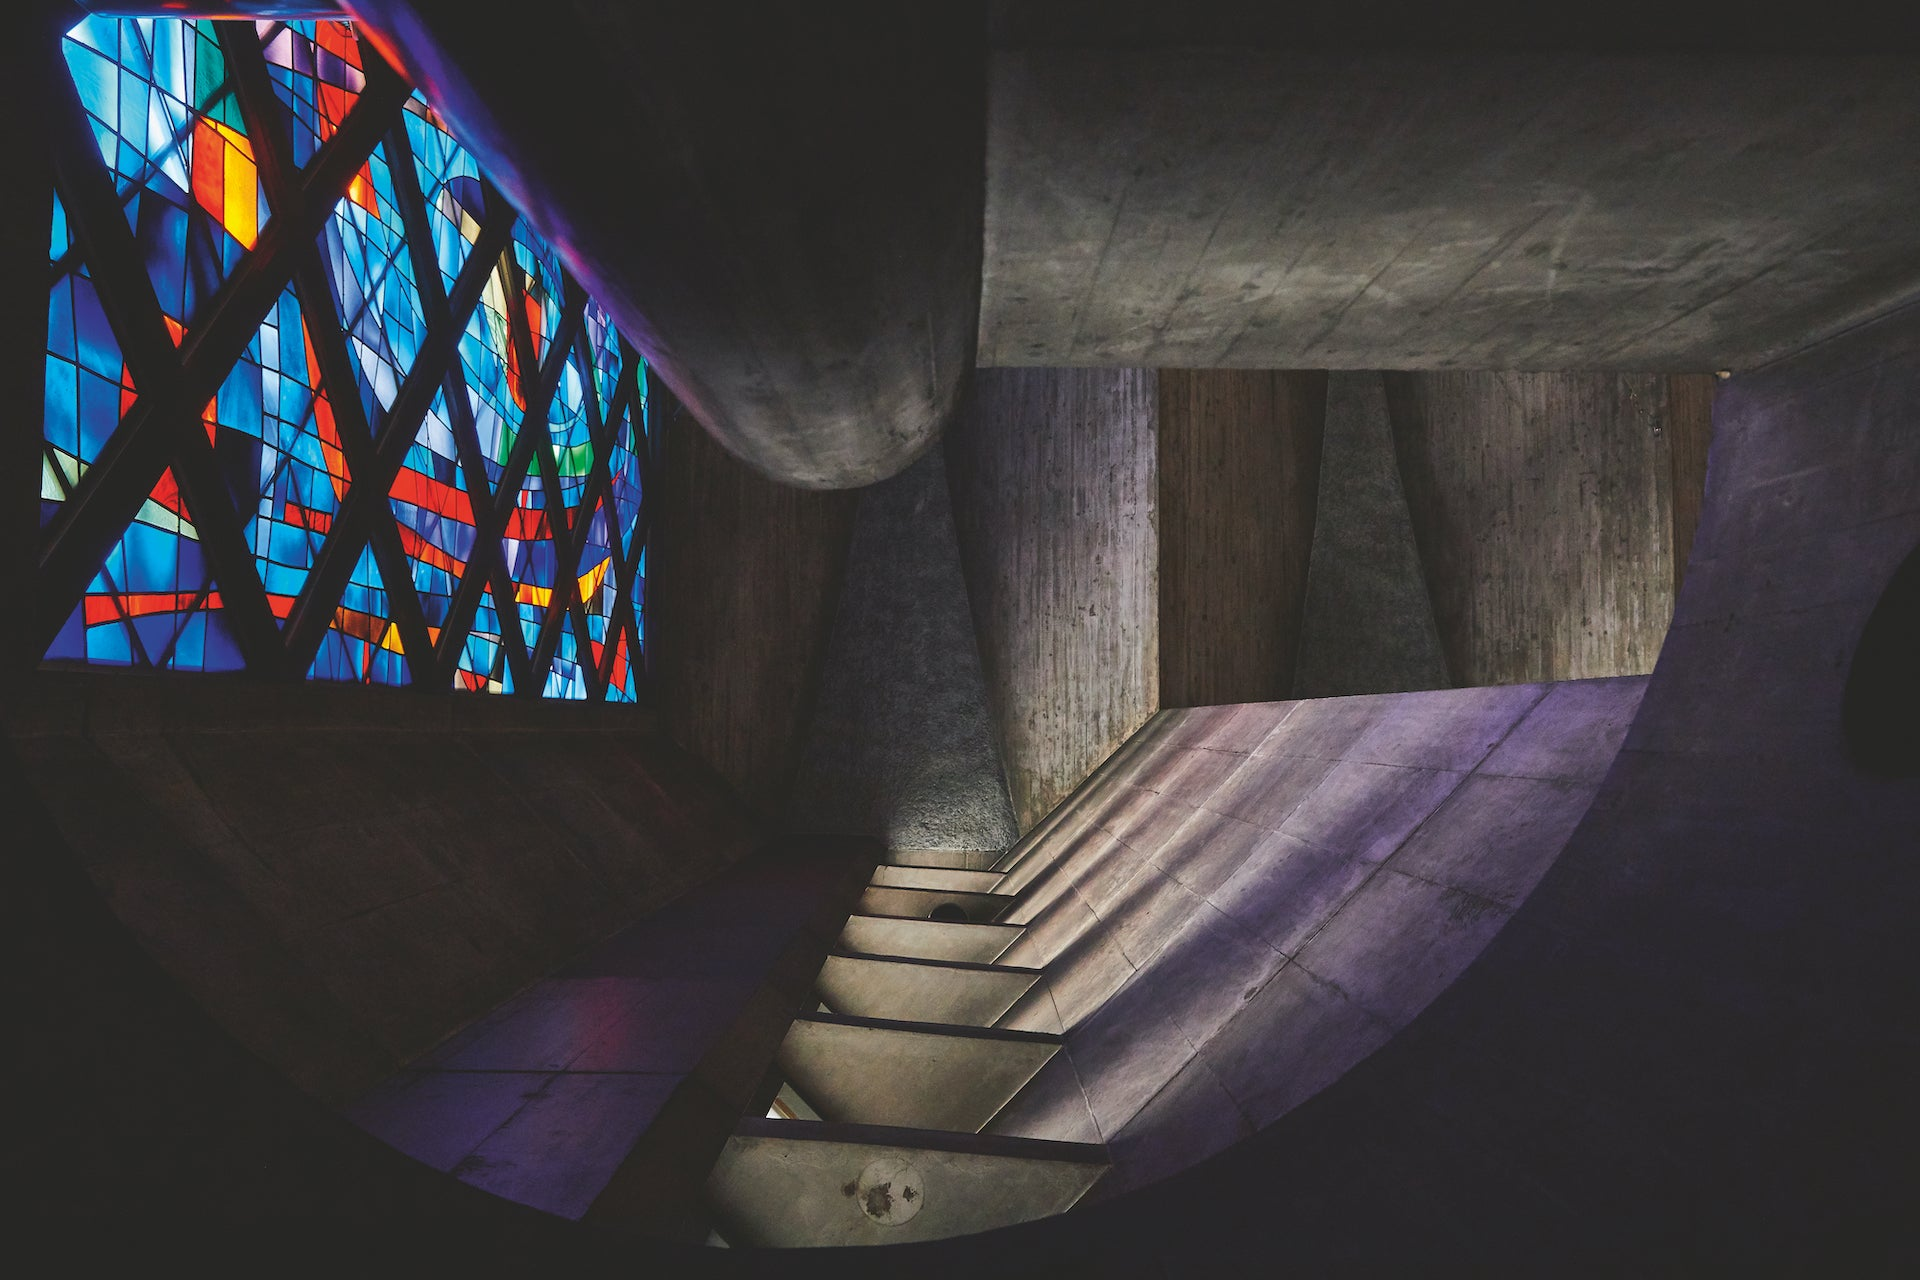 View up the concrete spiral staircase leading to the organ loft in St. Anselm's Catholic Church. Photo © Yoshihiro Makino